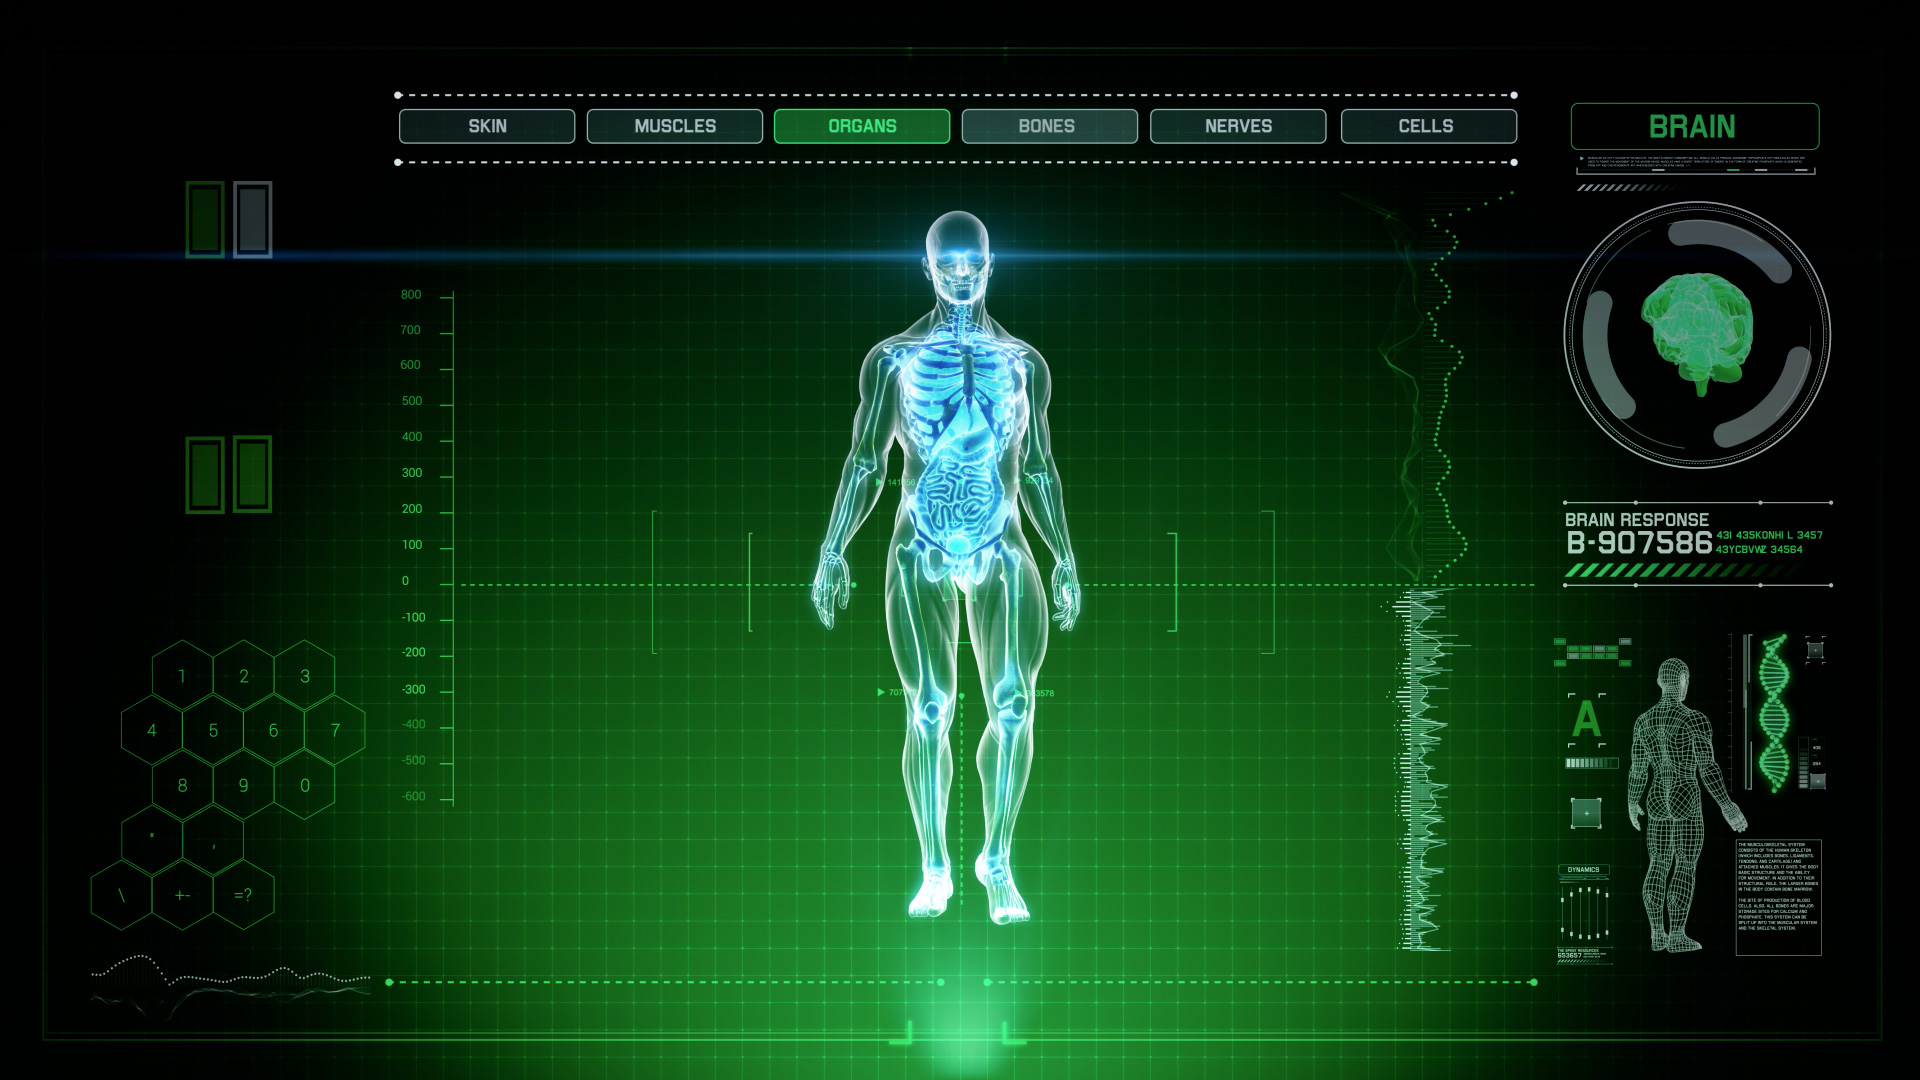 Best 3d Hologram Wallpaper Futuristic Interface Display Of Full Body Scan With Human